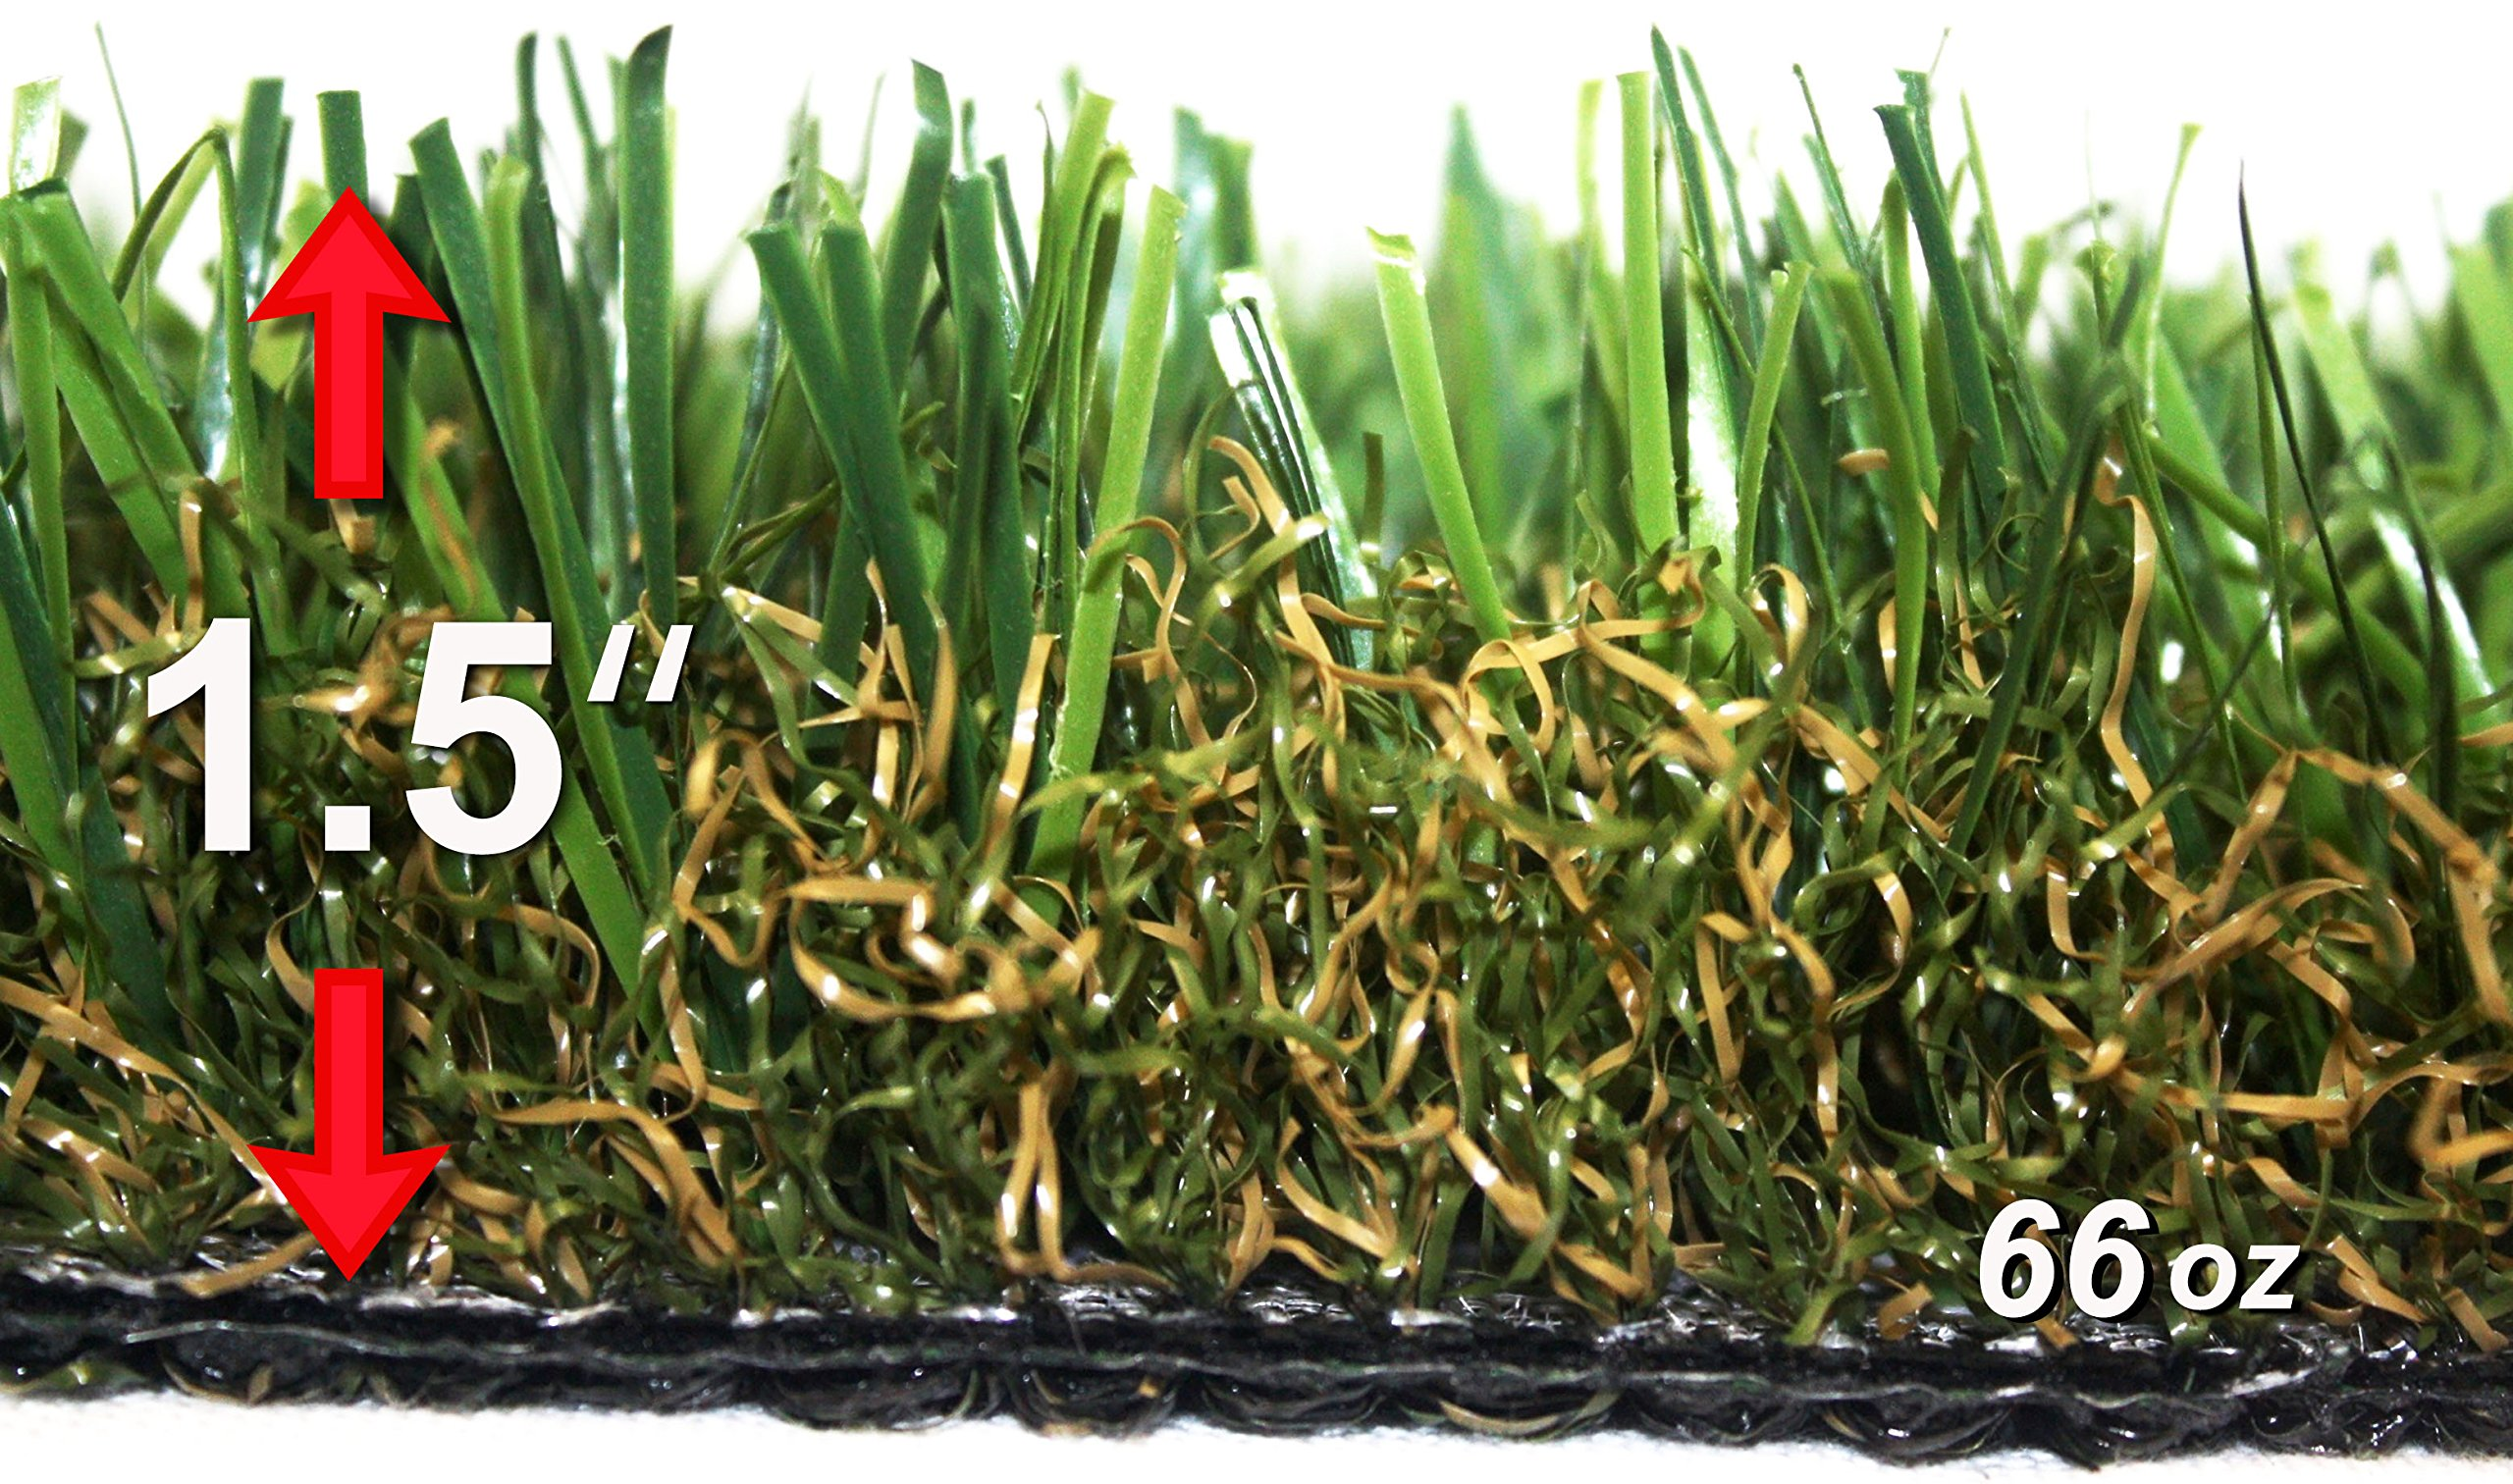 StarPro SPG-60 $2.35/sf ''Great'' Centipede SW Natural Artificial Synthetic Grass Lawn Turf, 18ftx15ft by StarPro Greens